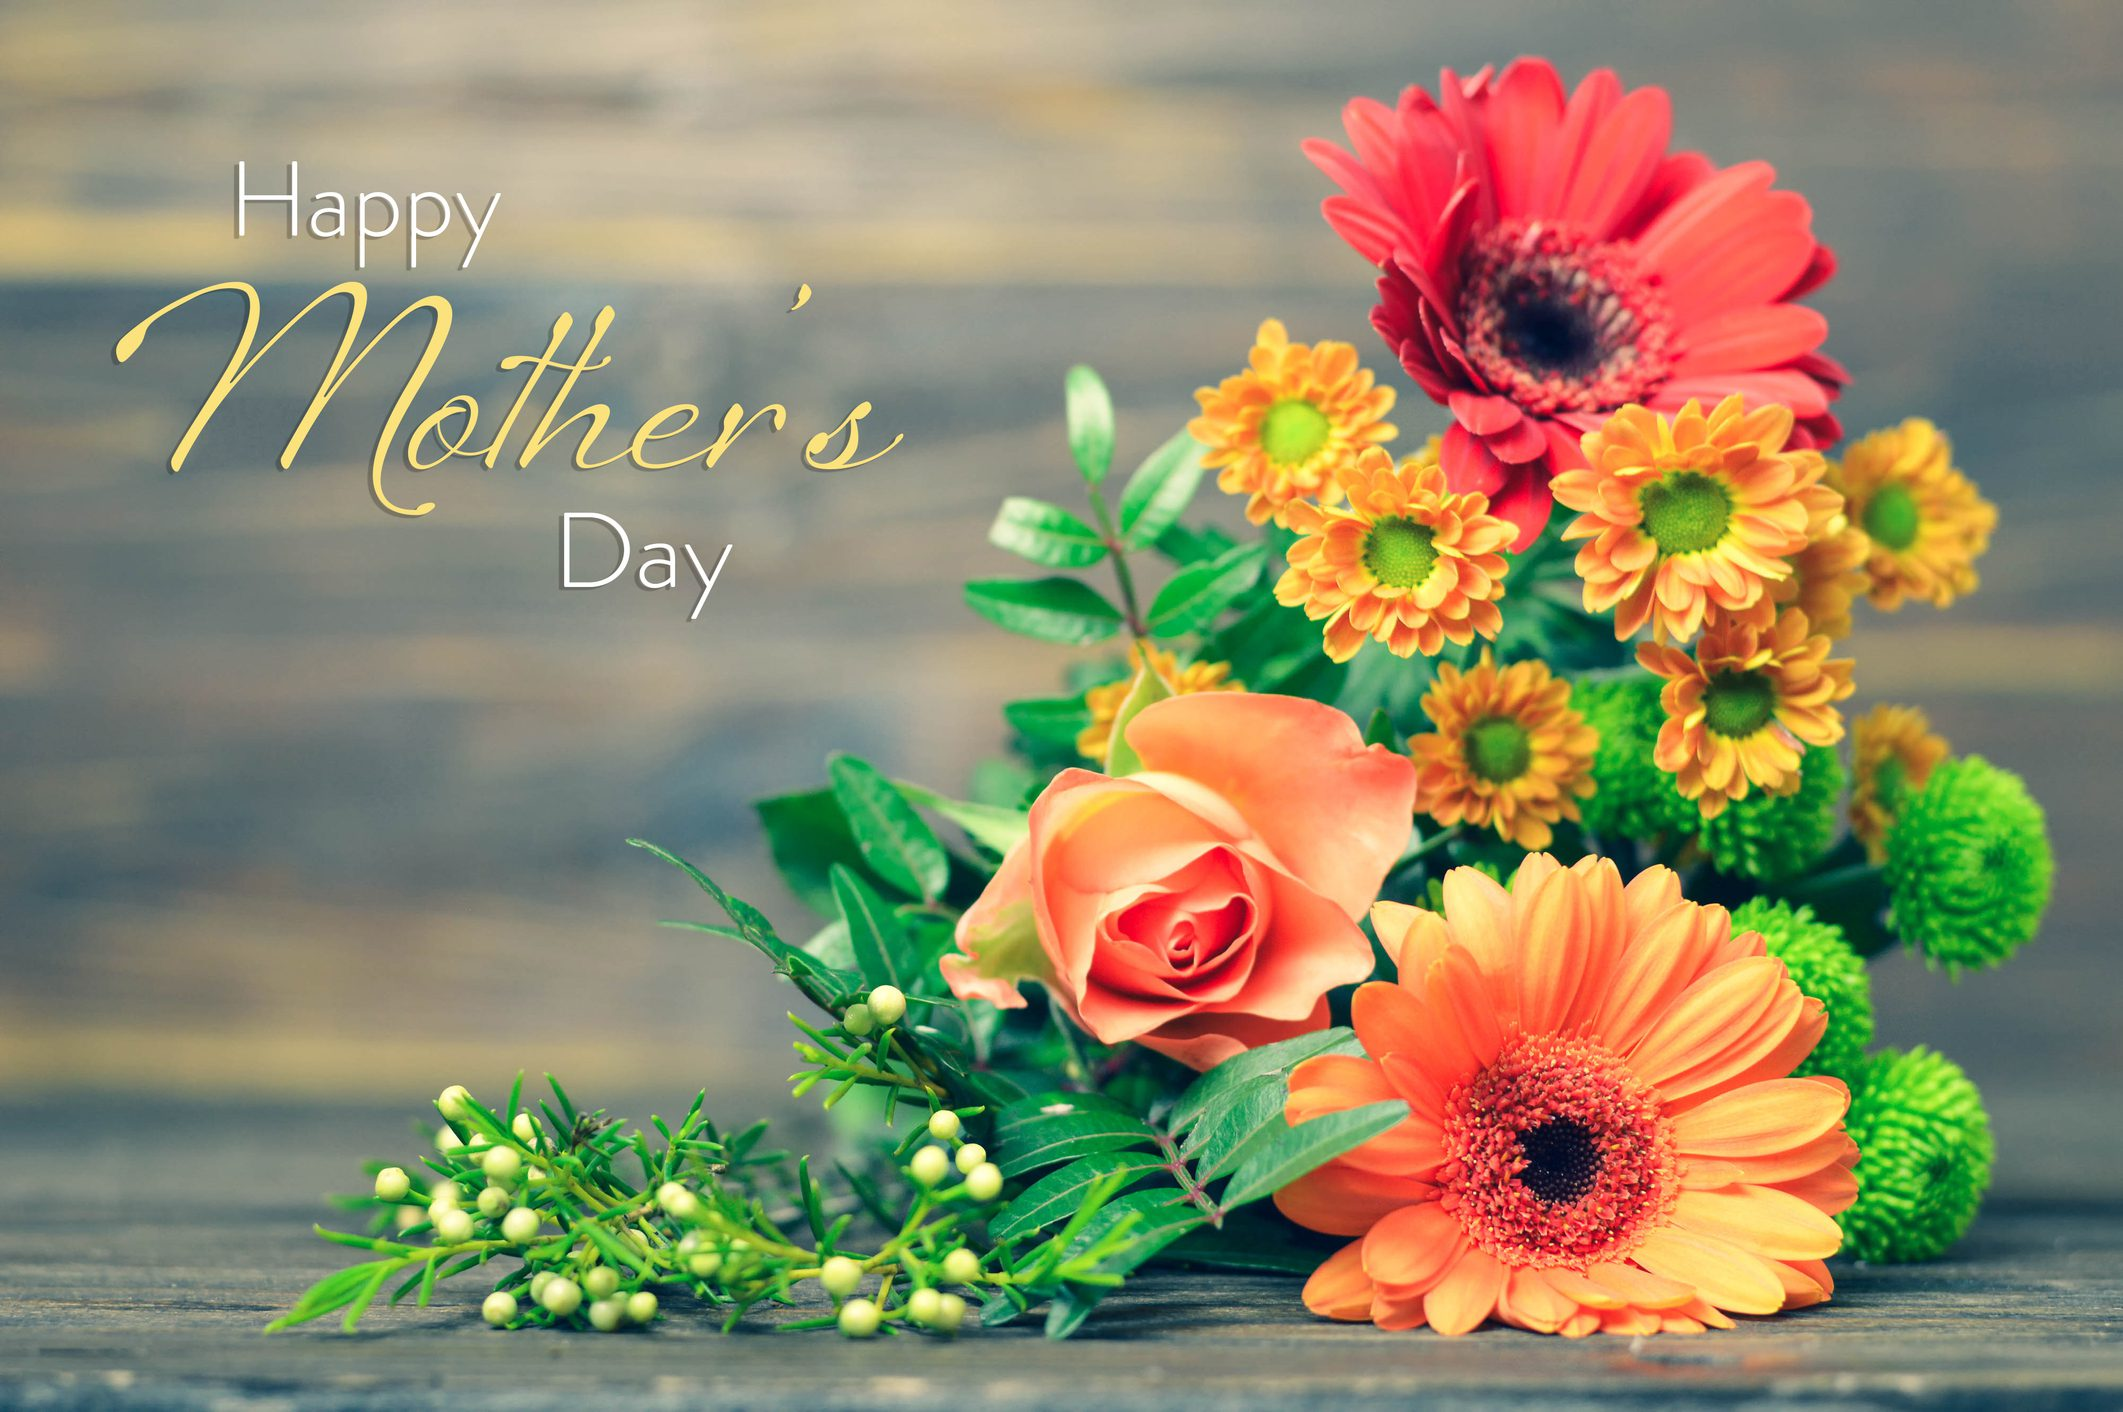 Happy Mothers Day card with flowers on wooden background